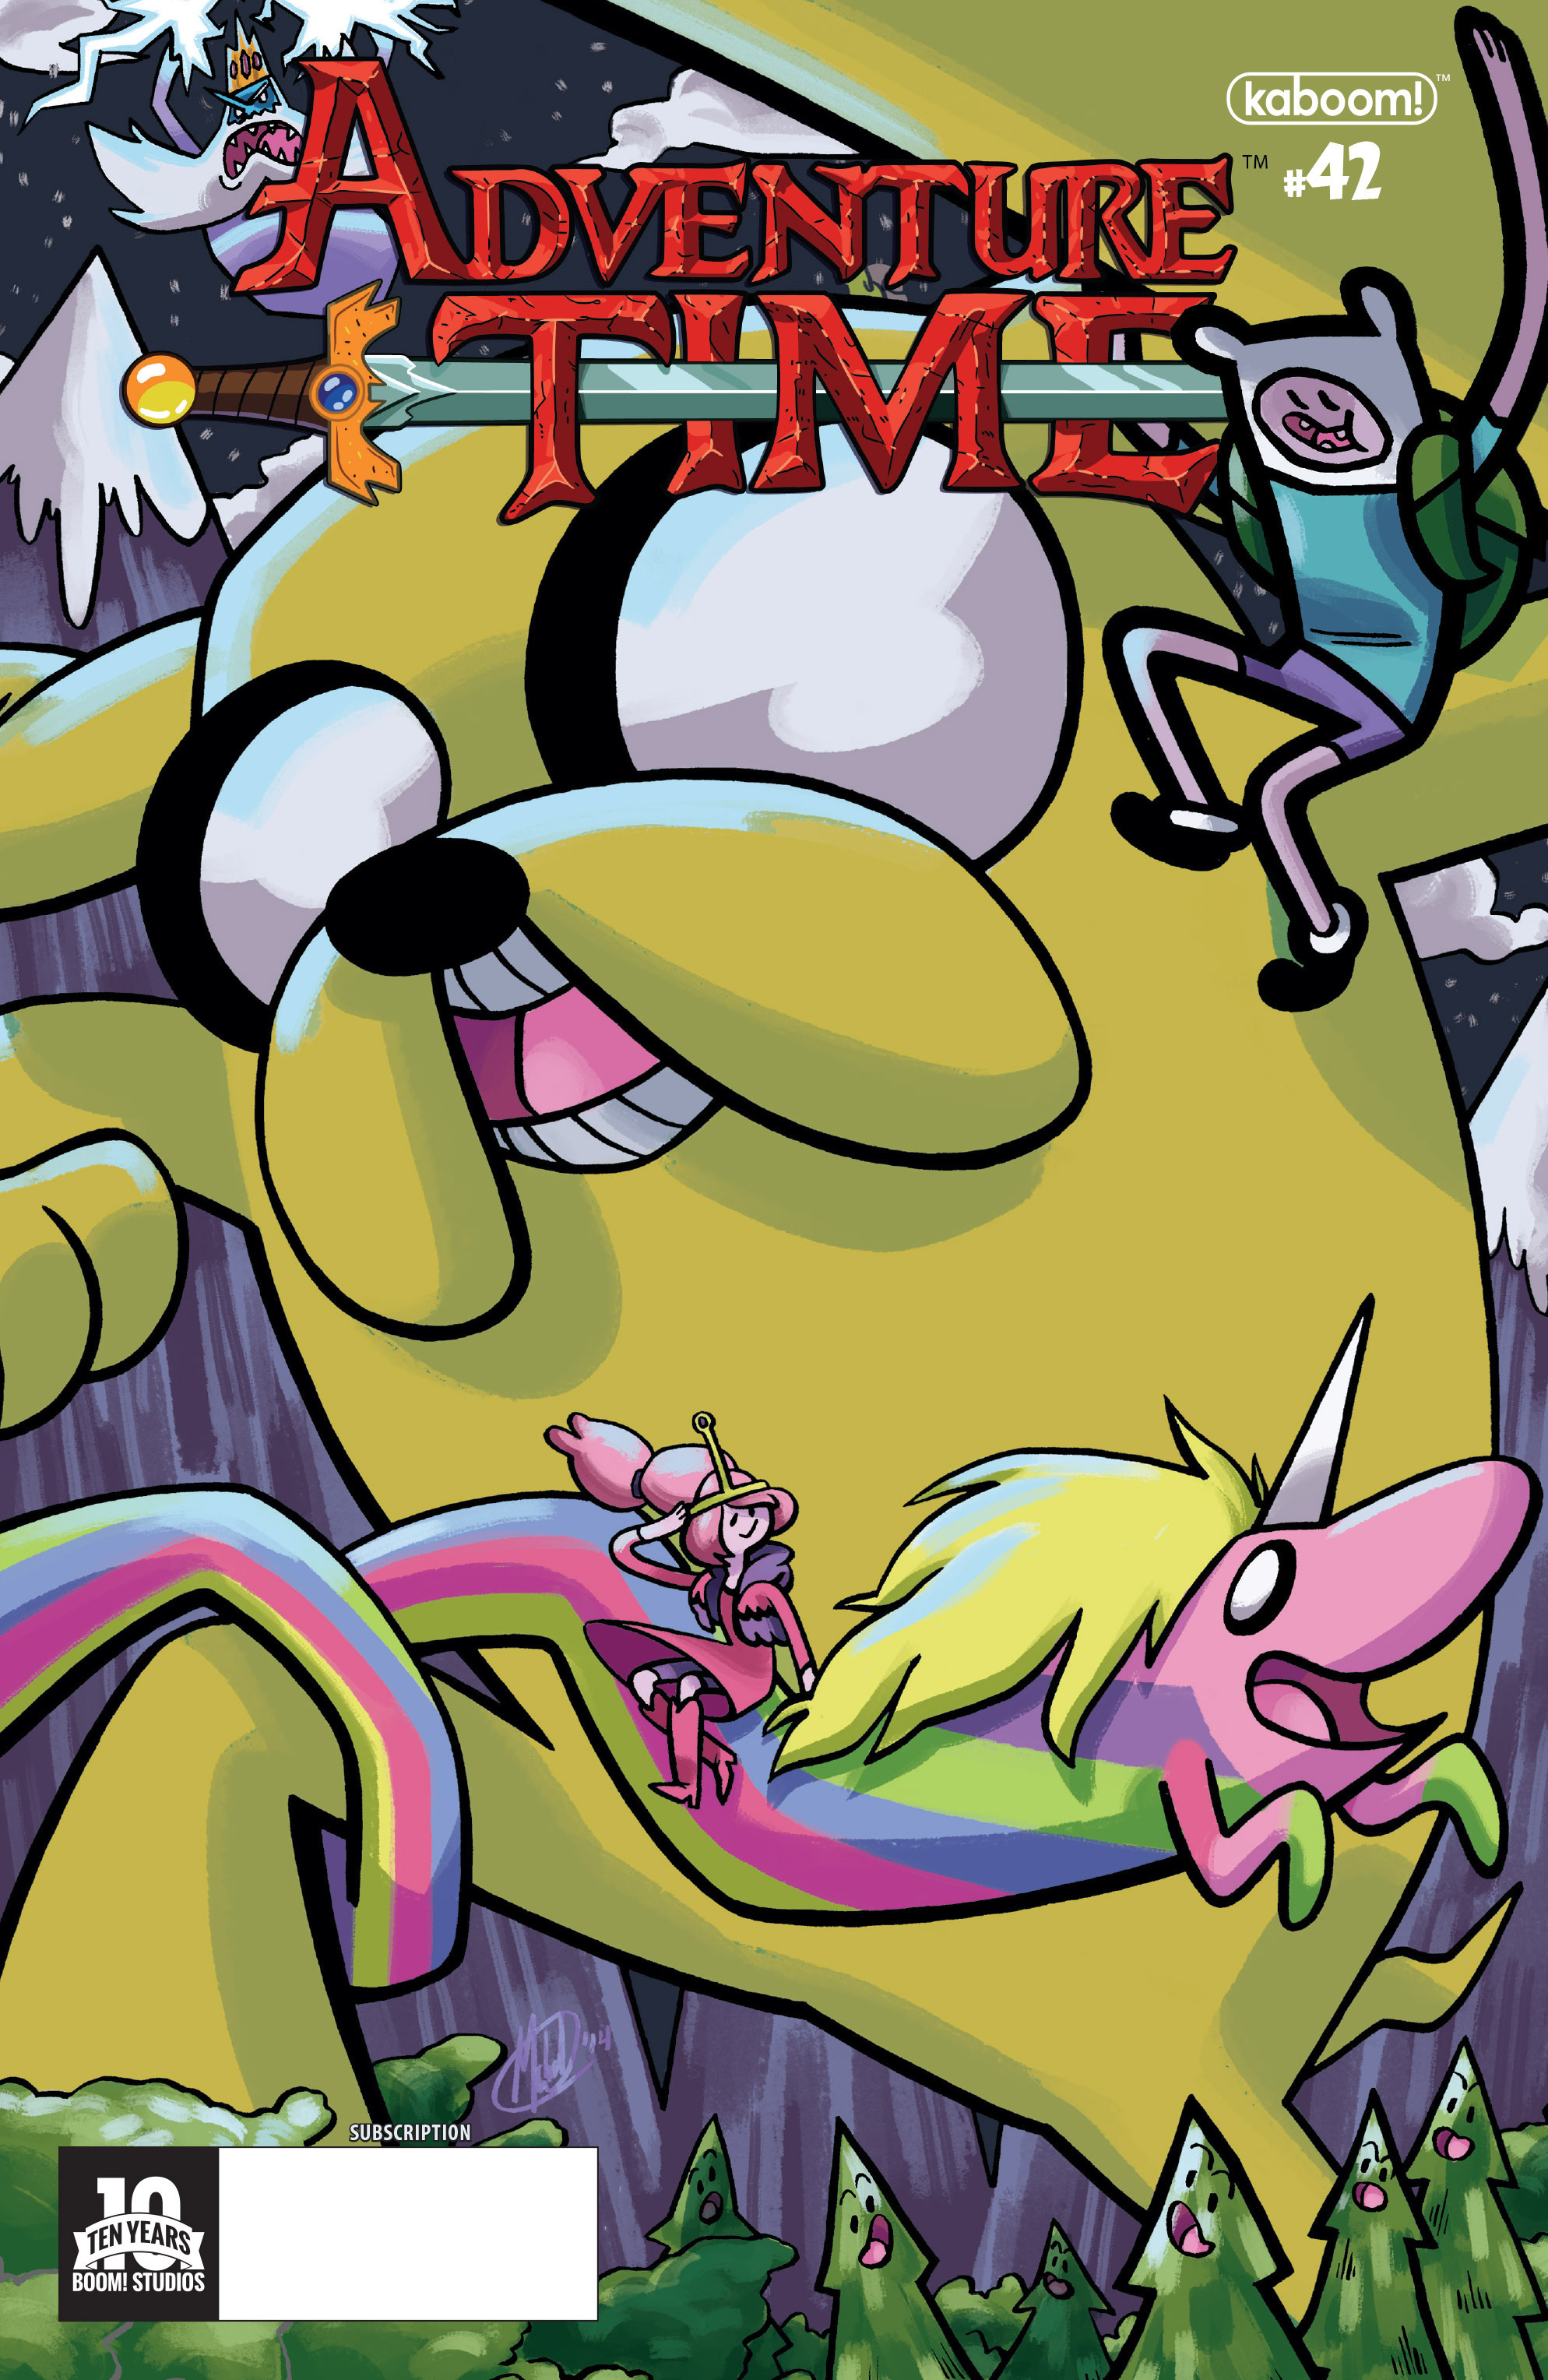 Read online Adventure Time comic -  Issue #42 - 2